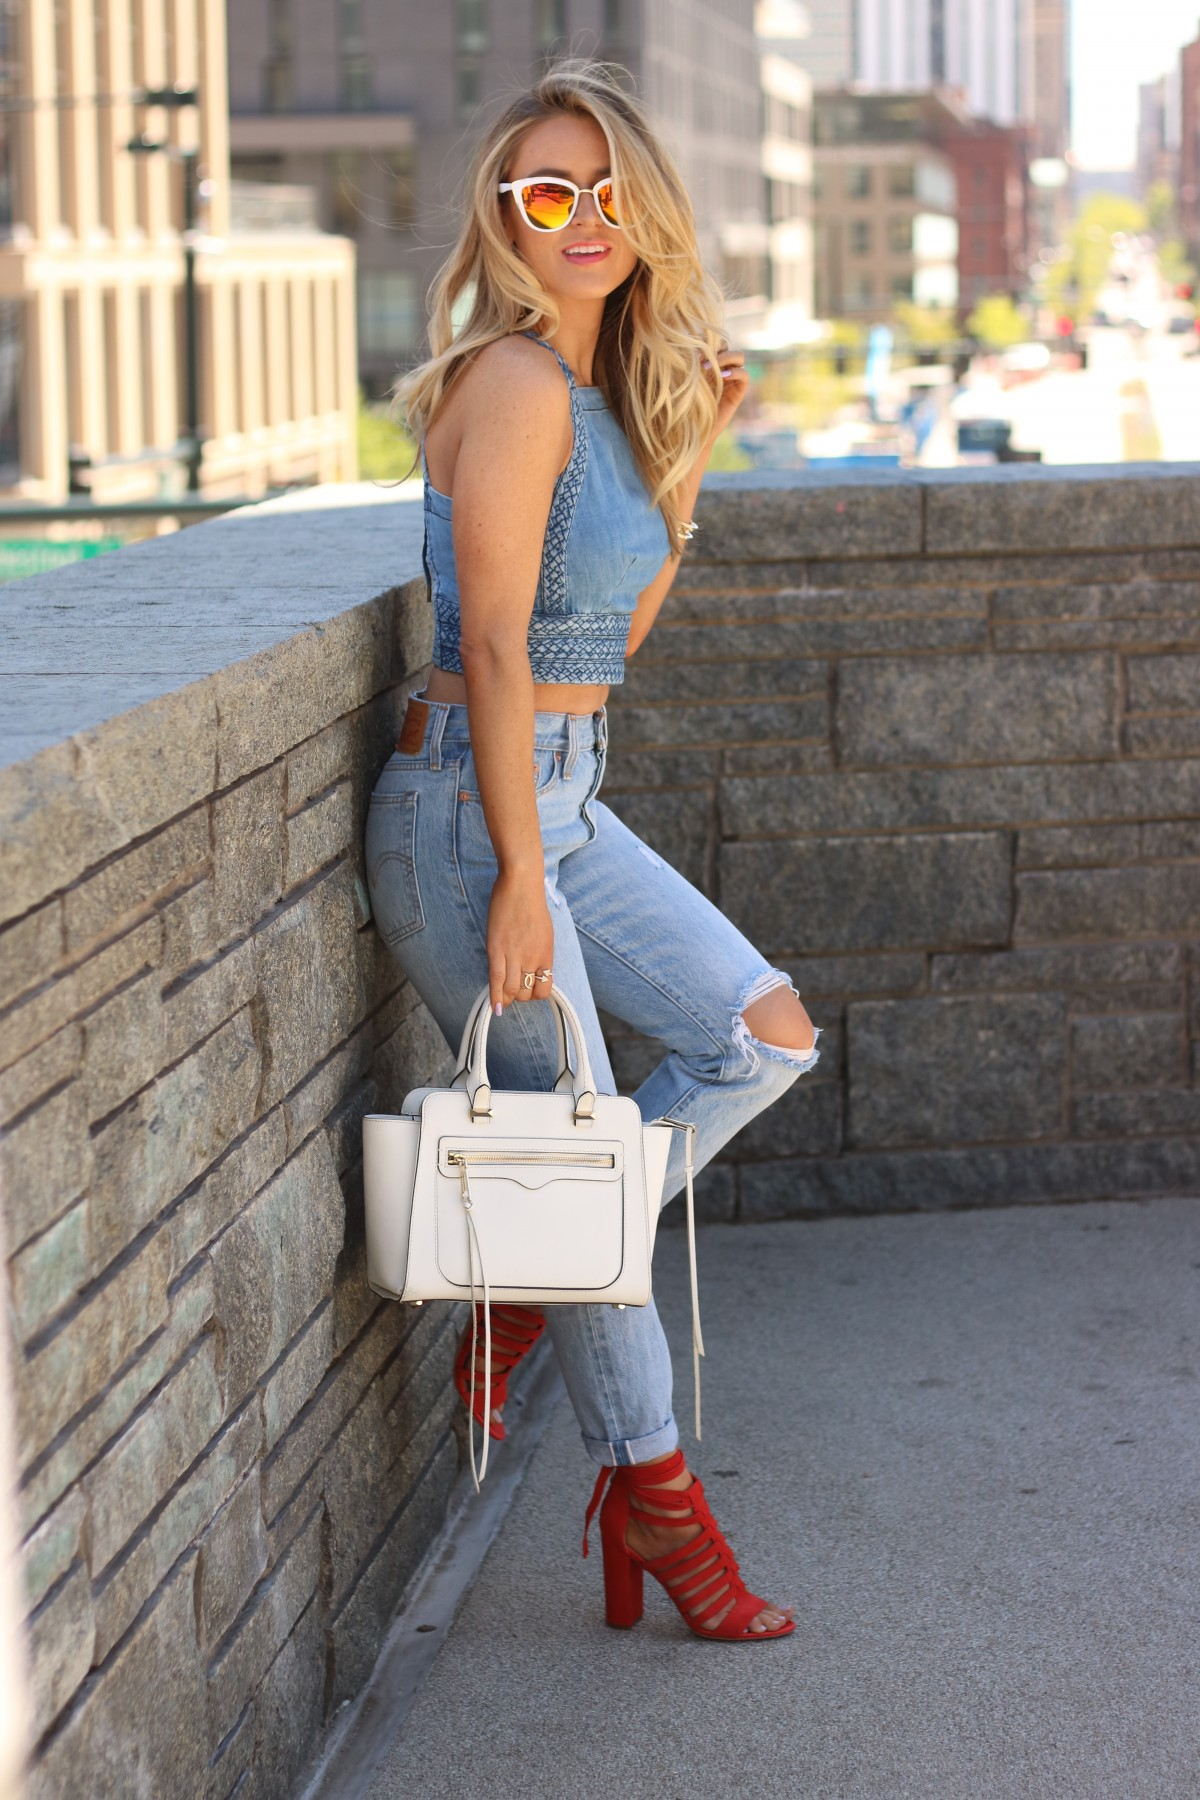  amber from every once in a style wearing   Le Spec sunglasses   denim on denim   white satchel